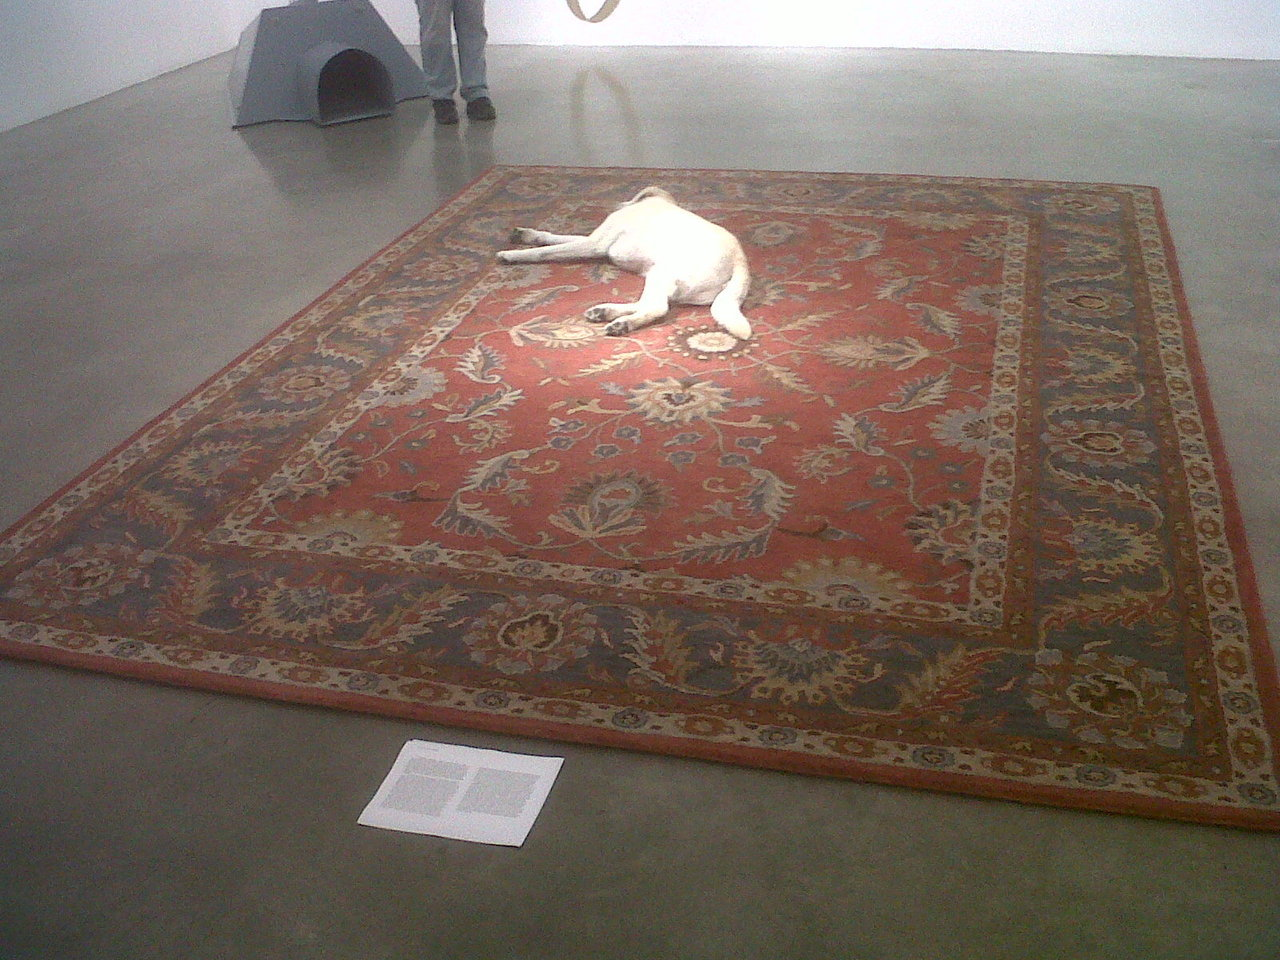 "Nina Beier, ""Tragedy"", persian rug, dog, dimension variable, 2011. Part of the exhibition ""DOGMA"" at Metro Pictures. From the Press Release: «The origin of the term dog days can be traced back to the ancient Romans who attributed the heat of the summer to Sirius, the brightest star in the night's sky, which they referred to as the Dog Star due to its position in the constellation Canis Major (Large Dog). Dog days were long believed to be maddening and wicked times that turned food and wine sour and pushed man to hysteria. The sweltering days of July and August then are the perfect time to exhibit works that look beyond the cuddly cuteness of dogs to focus on the idiosyncratic, interconnected fates of man and his best friend»."